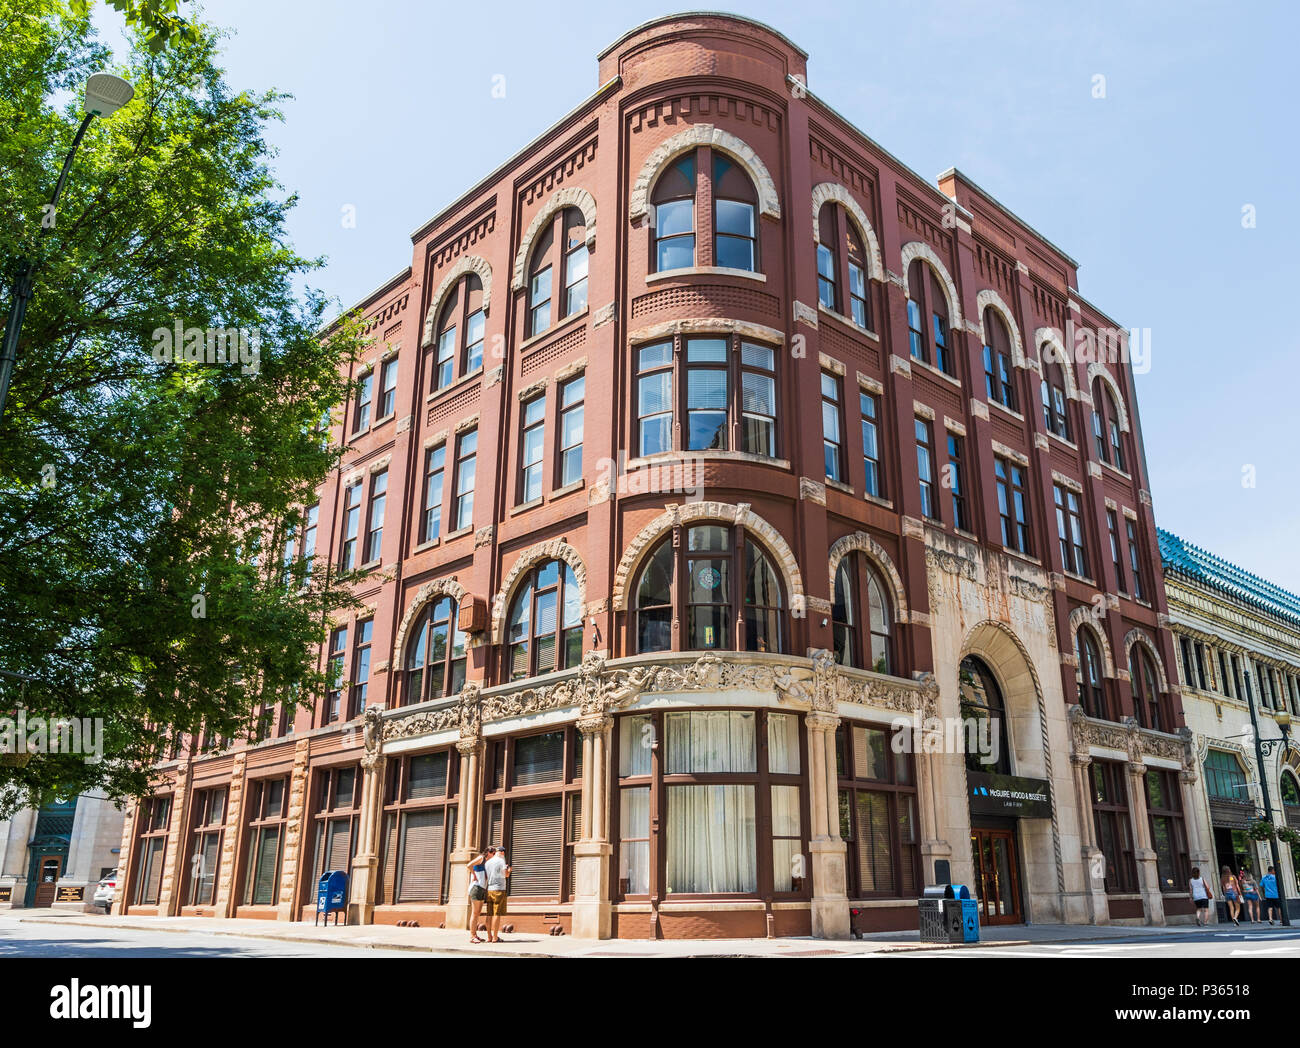 ASHEVILLE, NC, USA-10 JUNE 18: The Drhumor Building, 1895, is the oldest standing commercial building in the city.  Its design is Romanesque Revival. - Stock Image